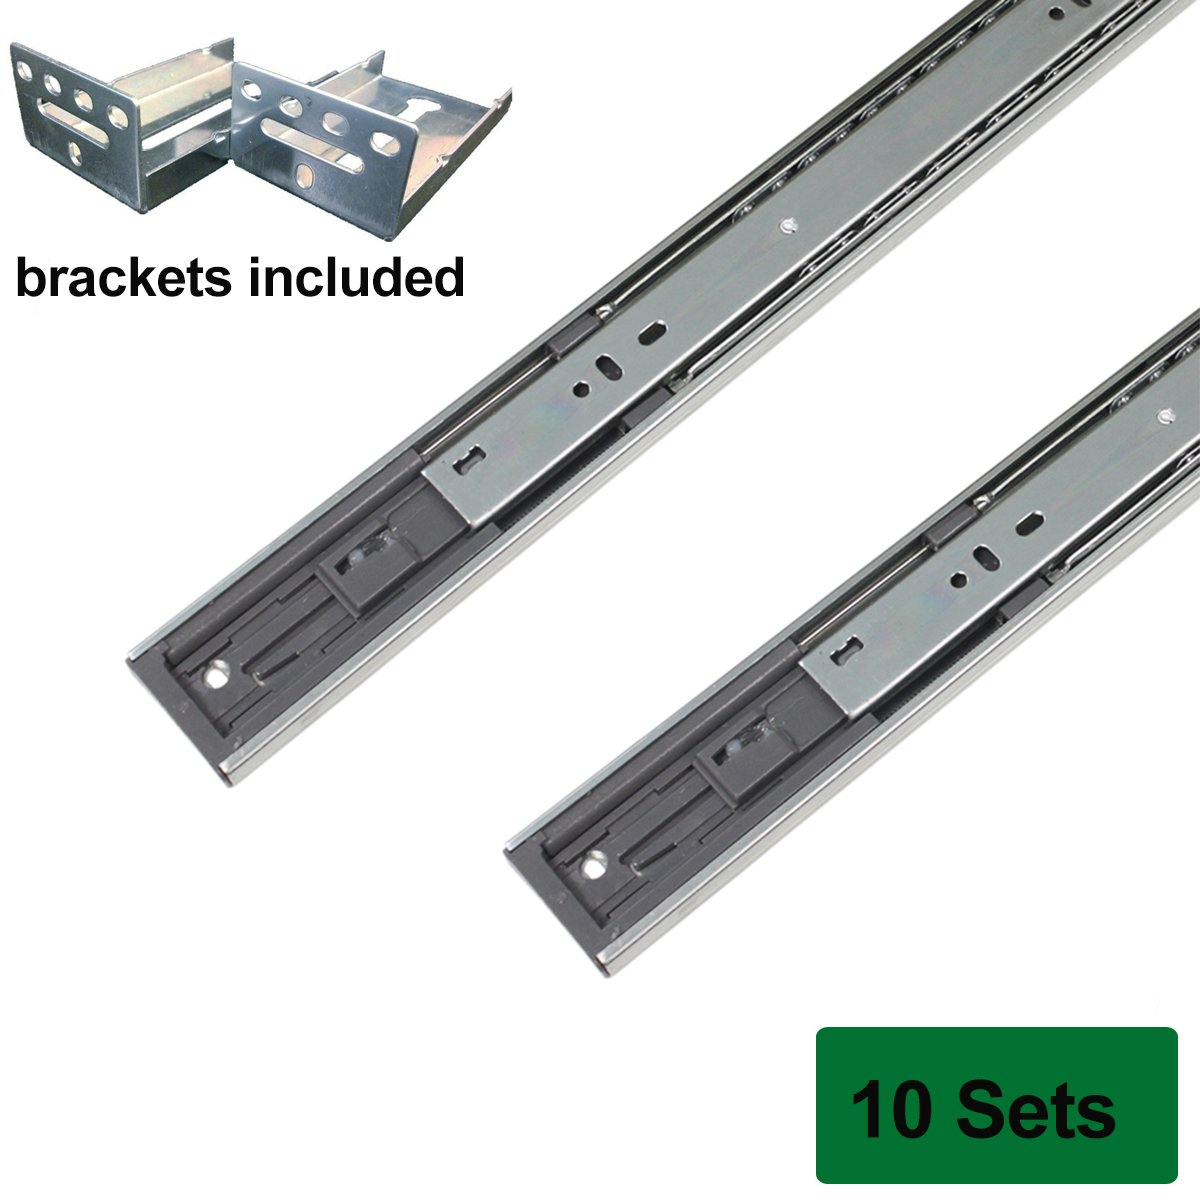 Probrico Brackets Included Soft Close 18-inch Full-Ext Drawer Slide 100-Pound Capacity Rear Mount,10 Pairs Sets by Probrico (Image #1)